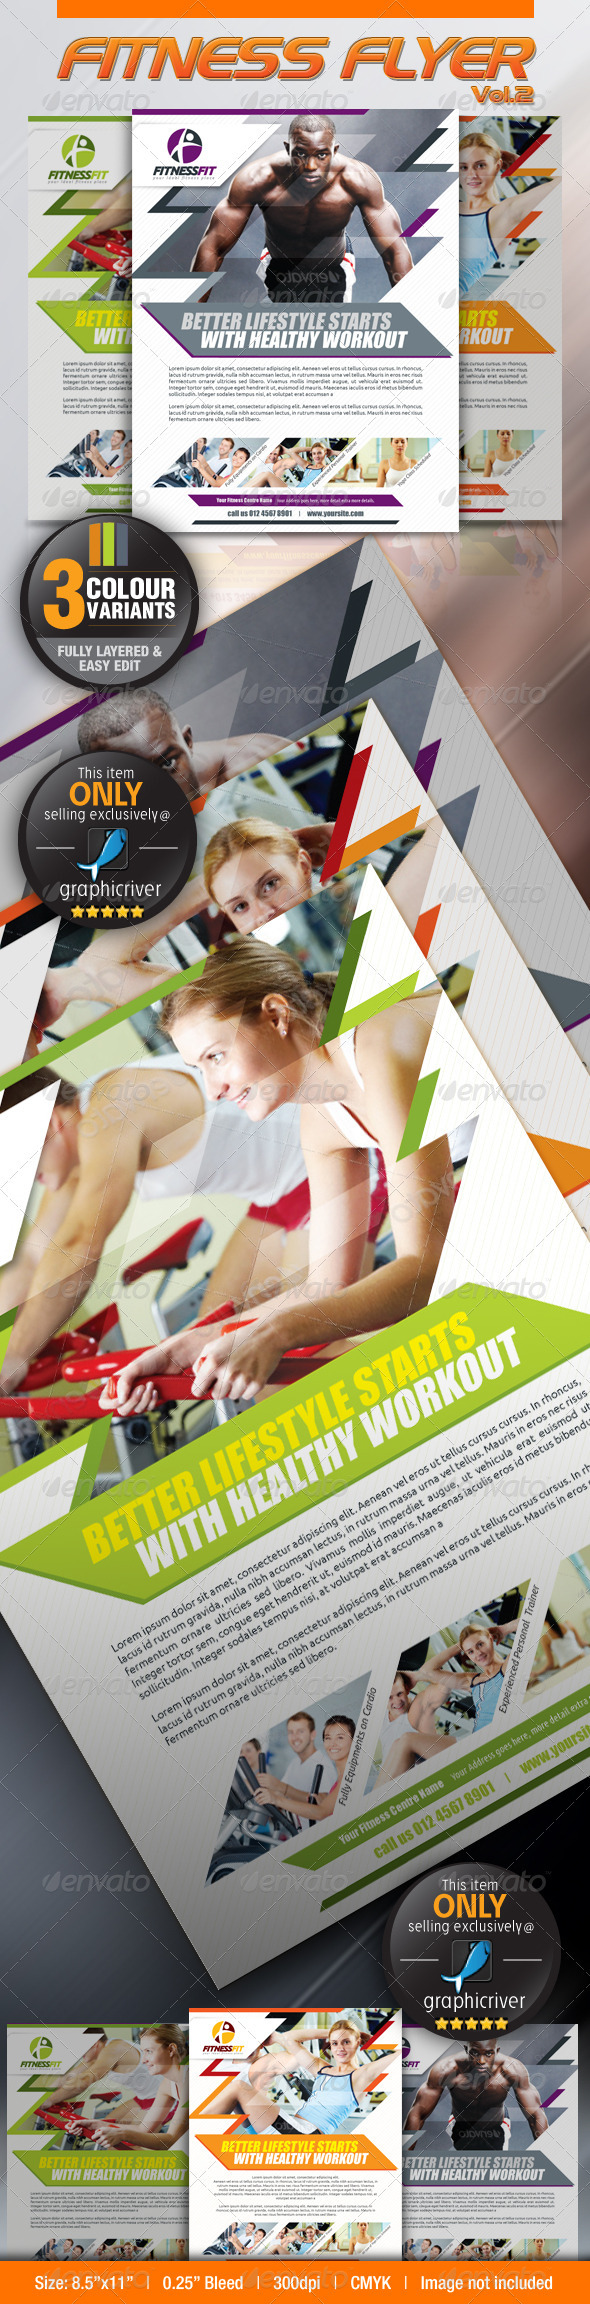 GraphicRiver Fitness Flyer Vol.2 2613127